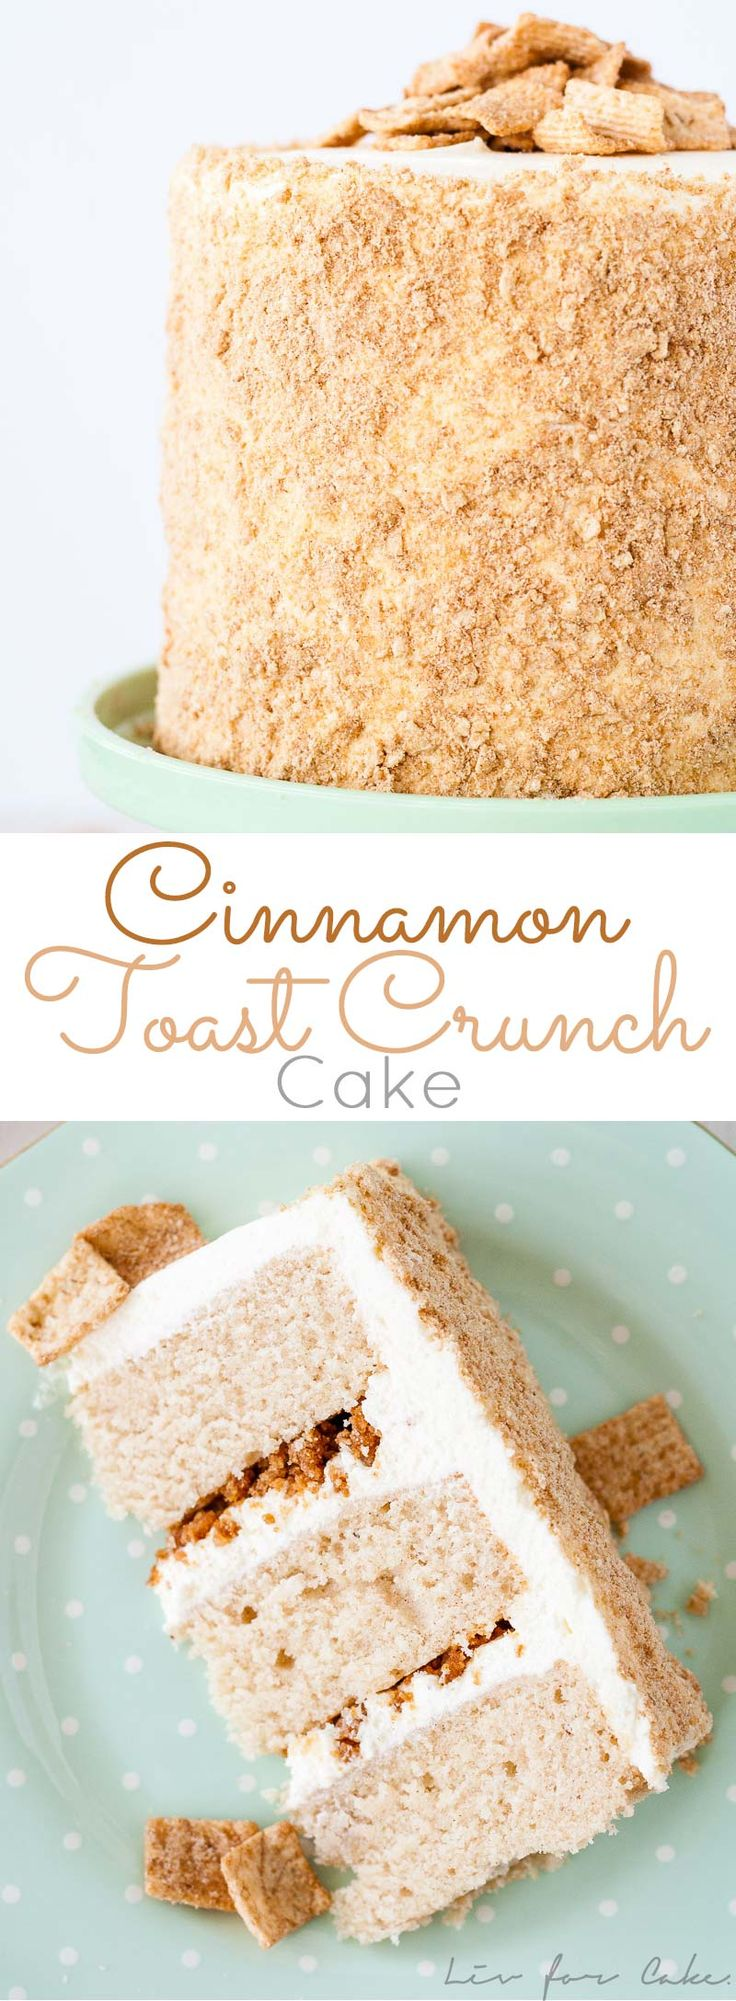 Your favorite cereal in cake form! Cinnamon cake, cream cheese frosting, and Cinnamon Toast Crunch crumble.   livforcake.com